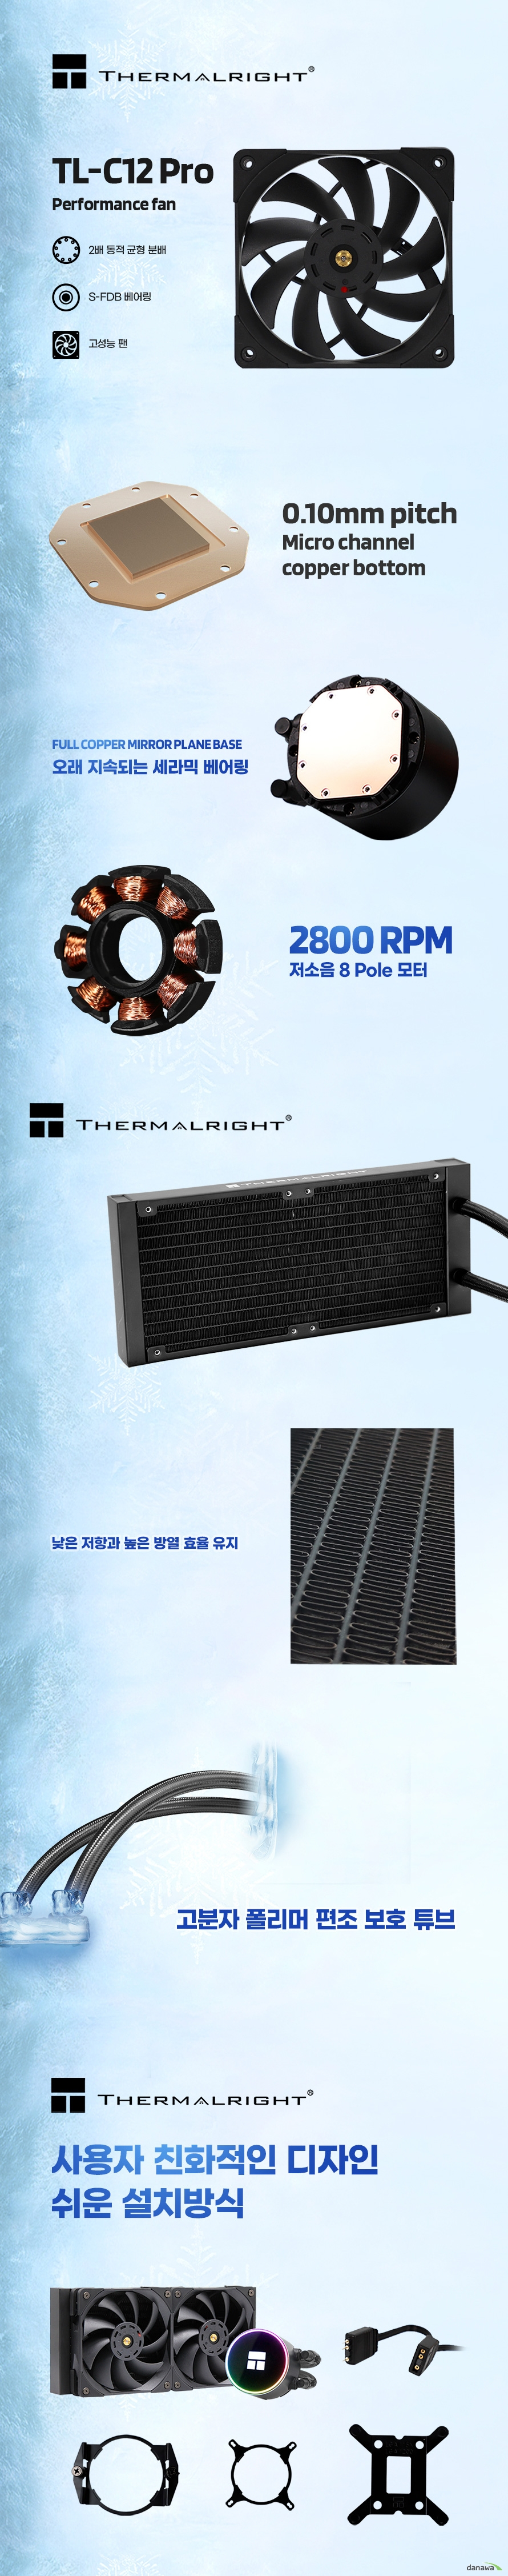 Thermalright FROZEN MAGIC EX240